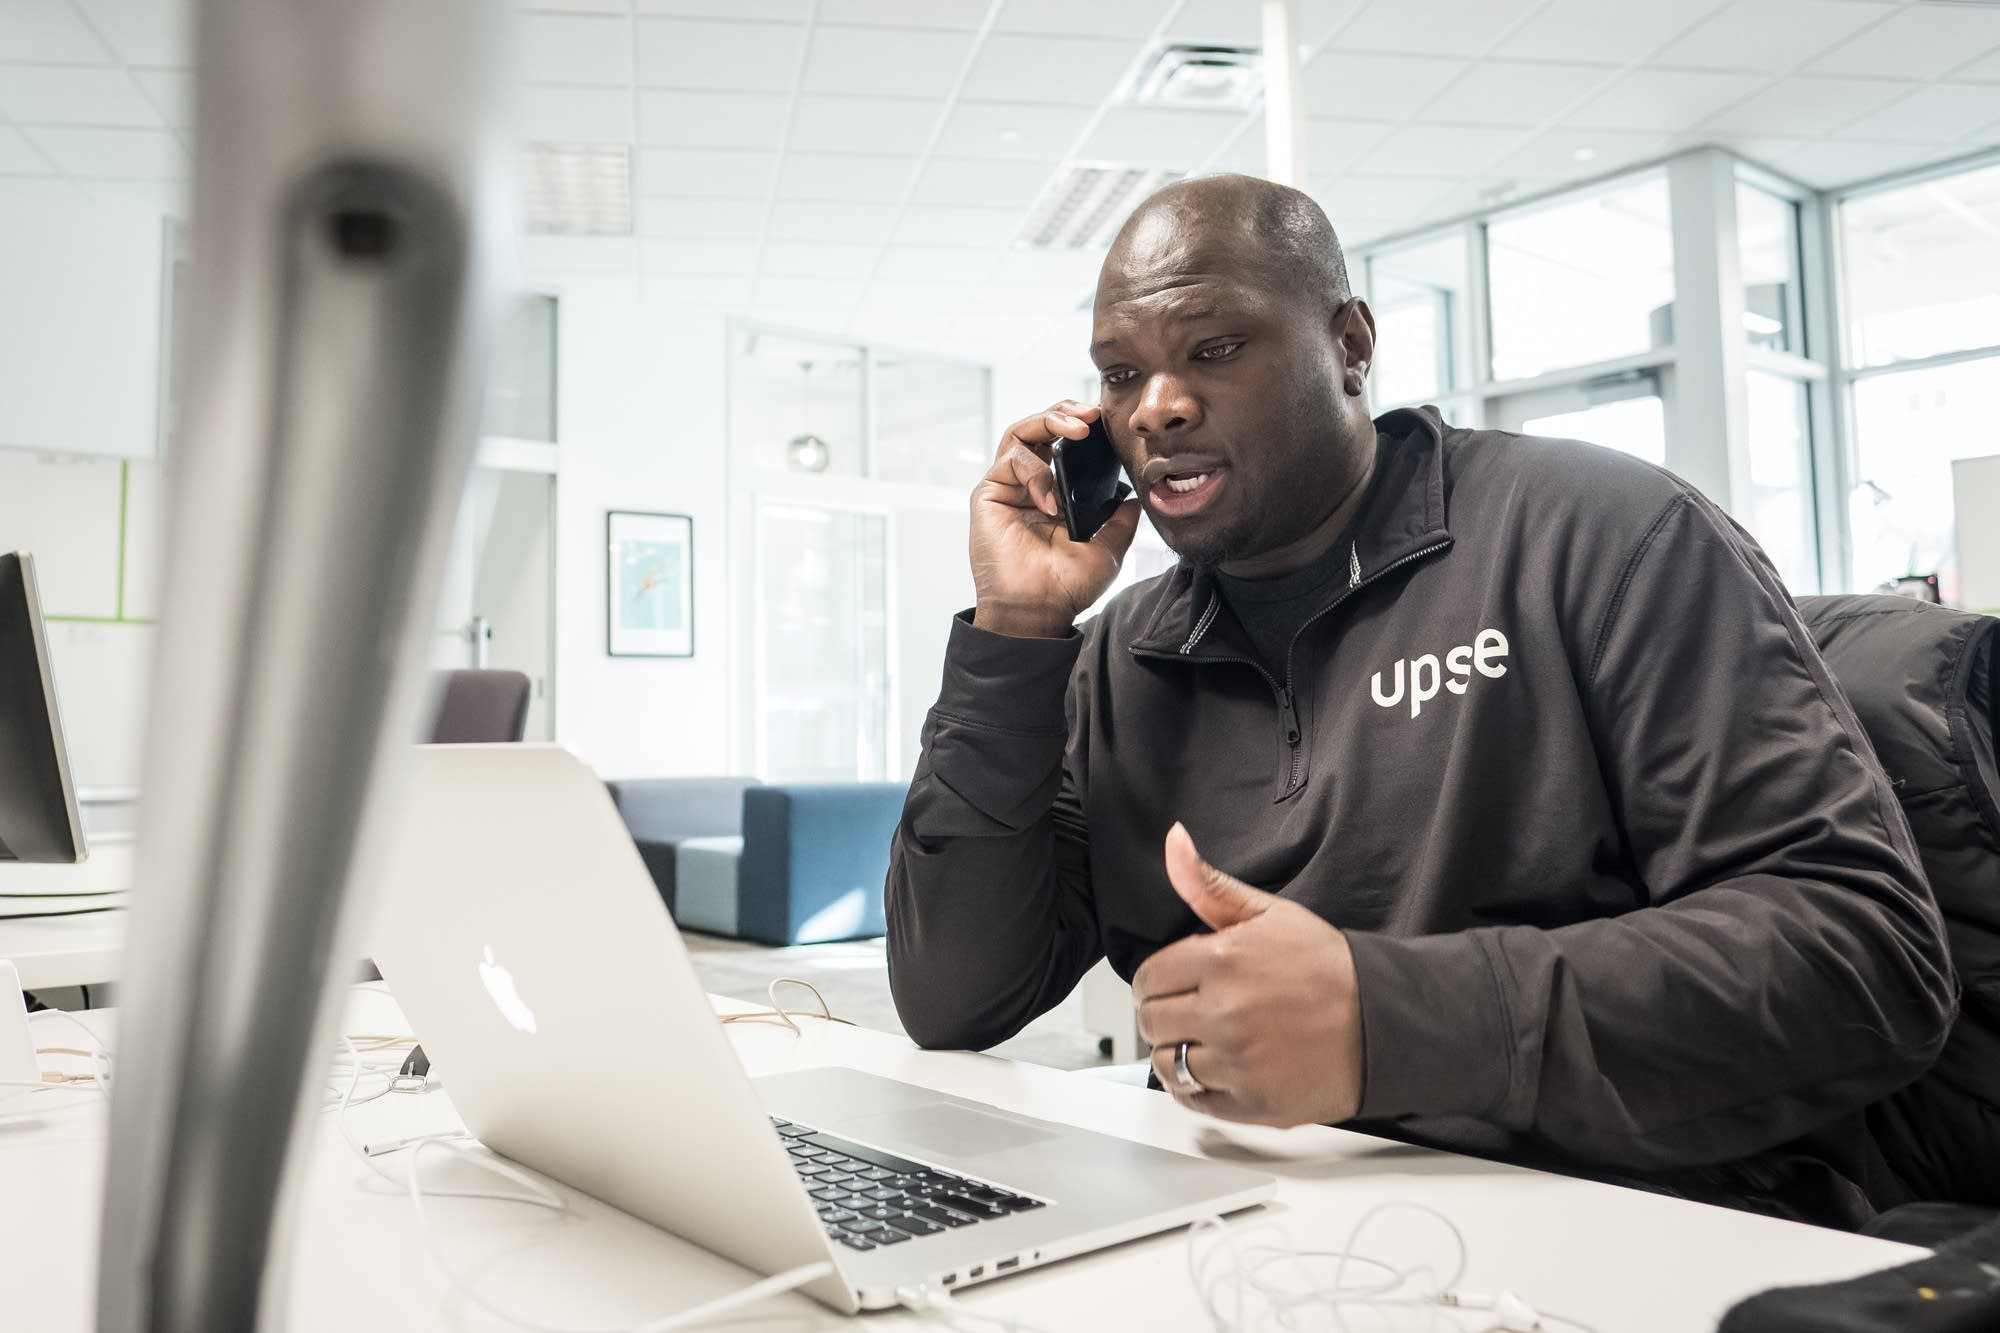 Clarence Bethea, CEO of Upsie, speaks on the phone at the Upsie office.